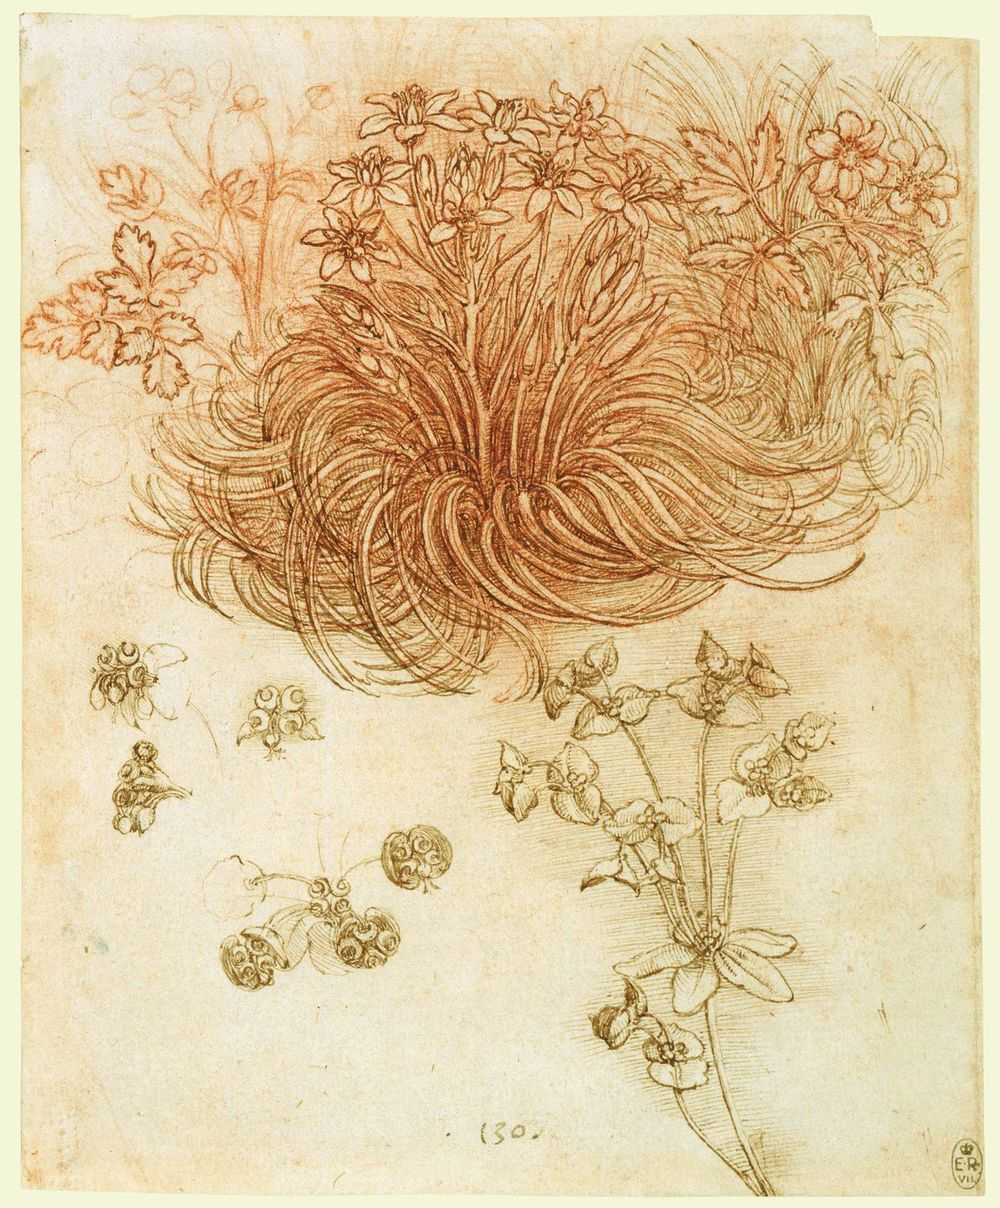 Leonardo da Vinci - Drawings - Plants - 10.jpg